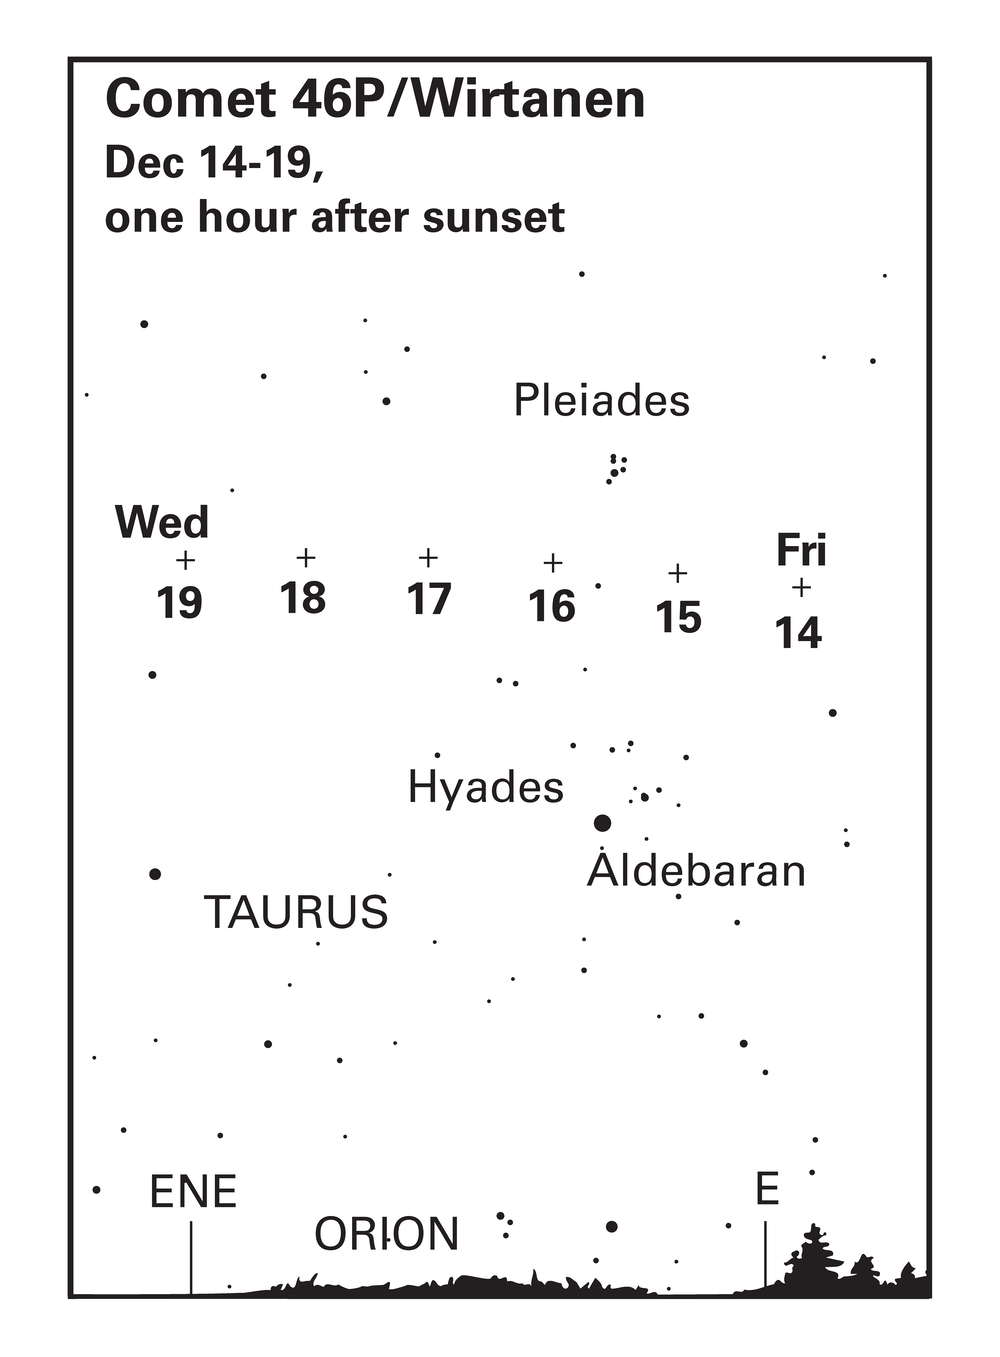 The plus sign indicates where you can spot Comet 46P/Wirtanen the evenings of Dec. 14 through 19. The plot is set for one hour after sunset for a latitude between 40-90 degrees. John French, CC BY-ND